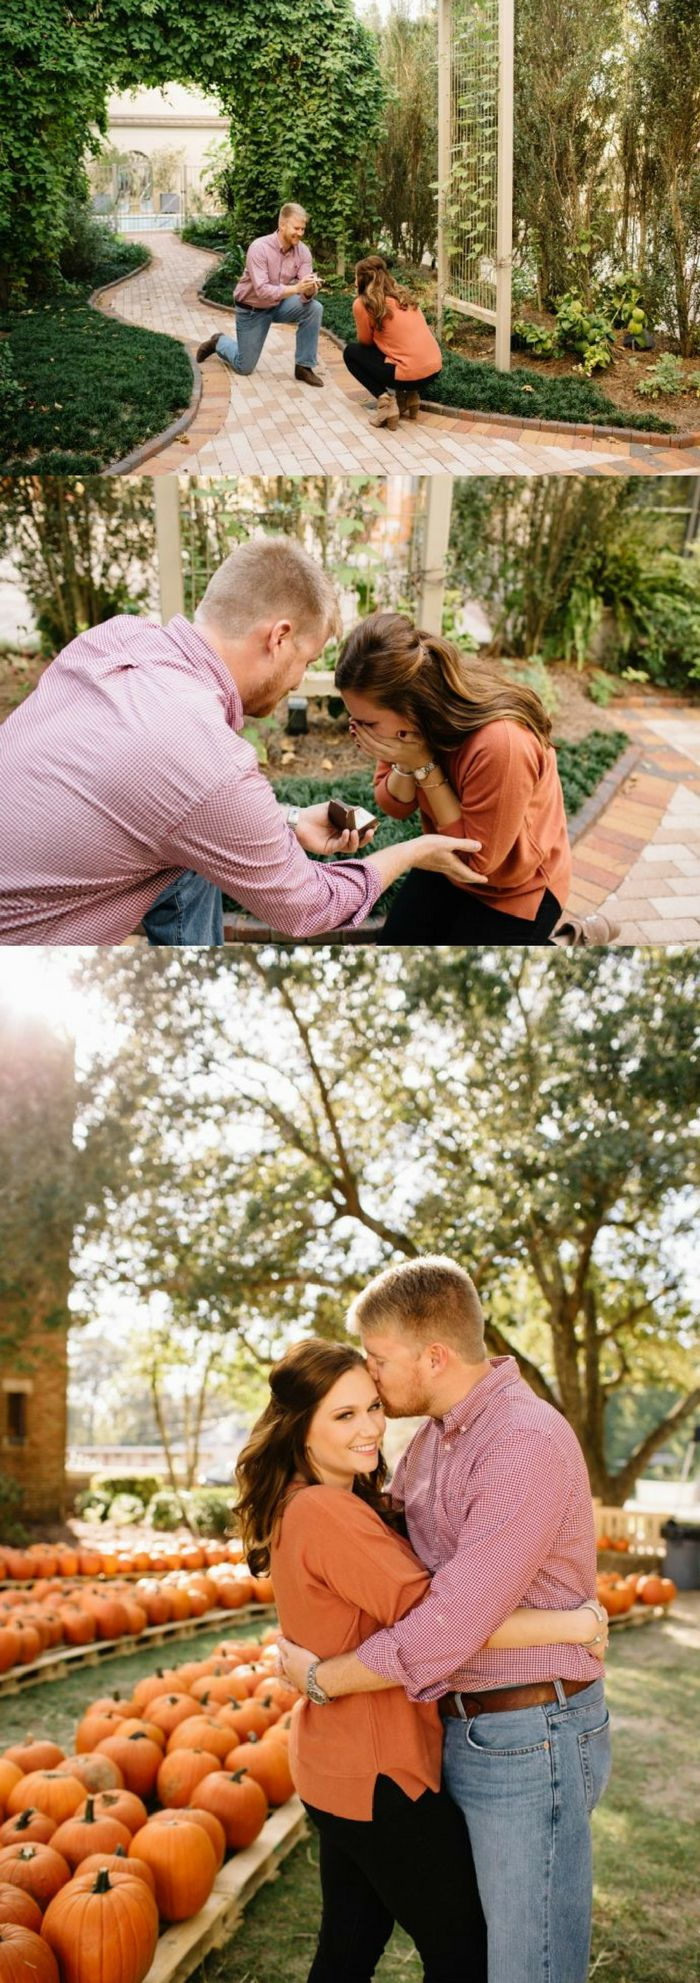 This pumpkin patch proposal is so perfect for fall! She was beyond surprised to see him on one knee.